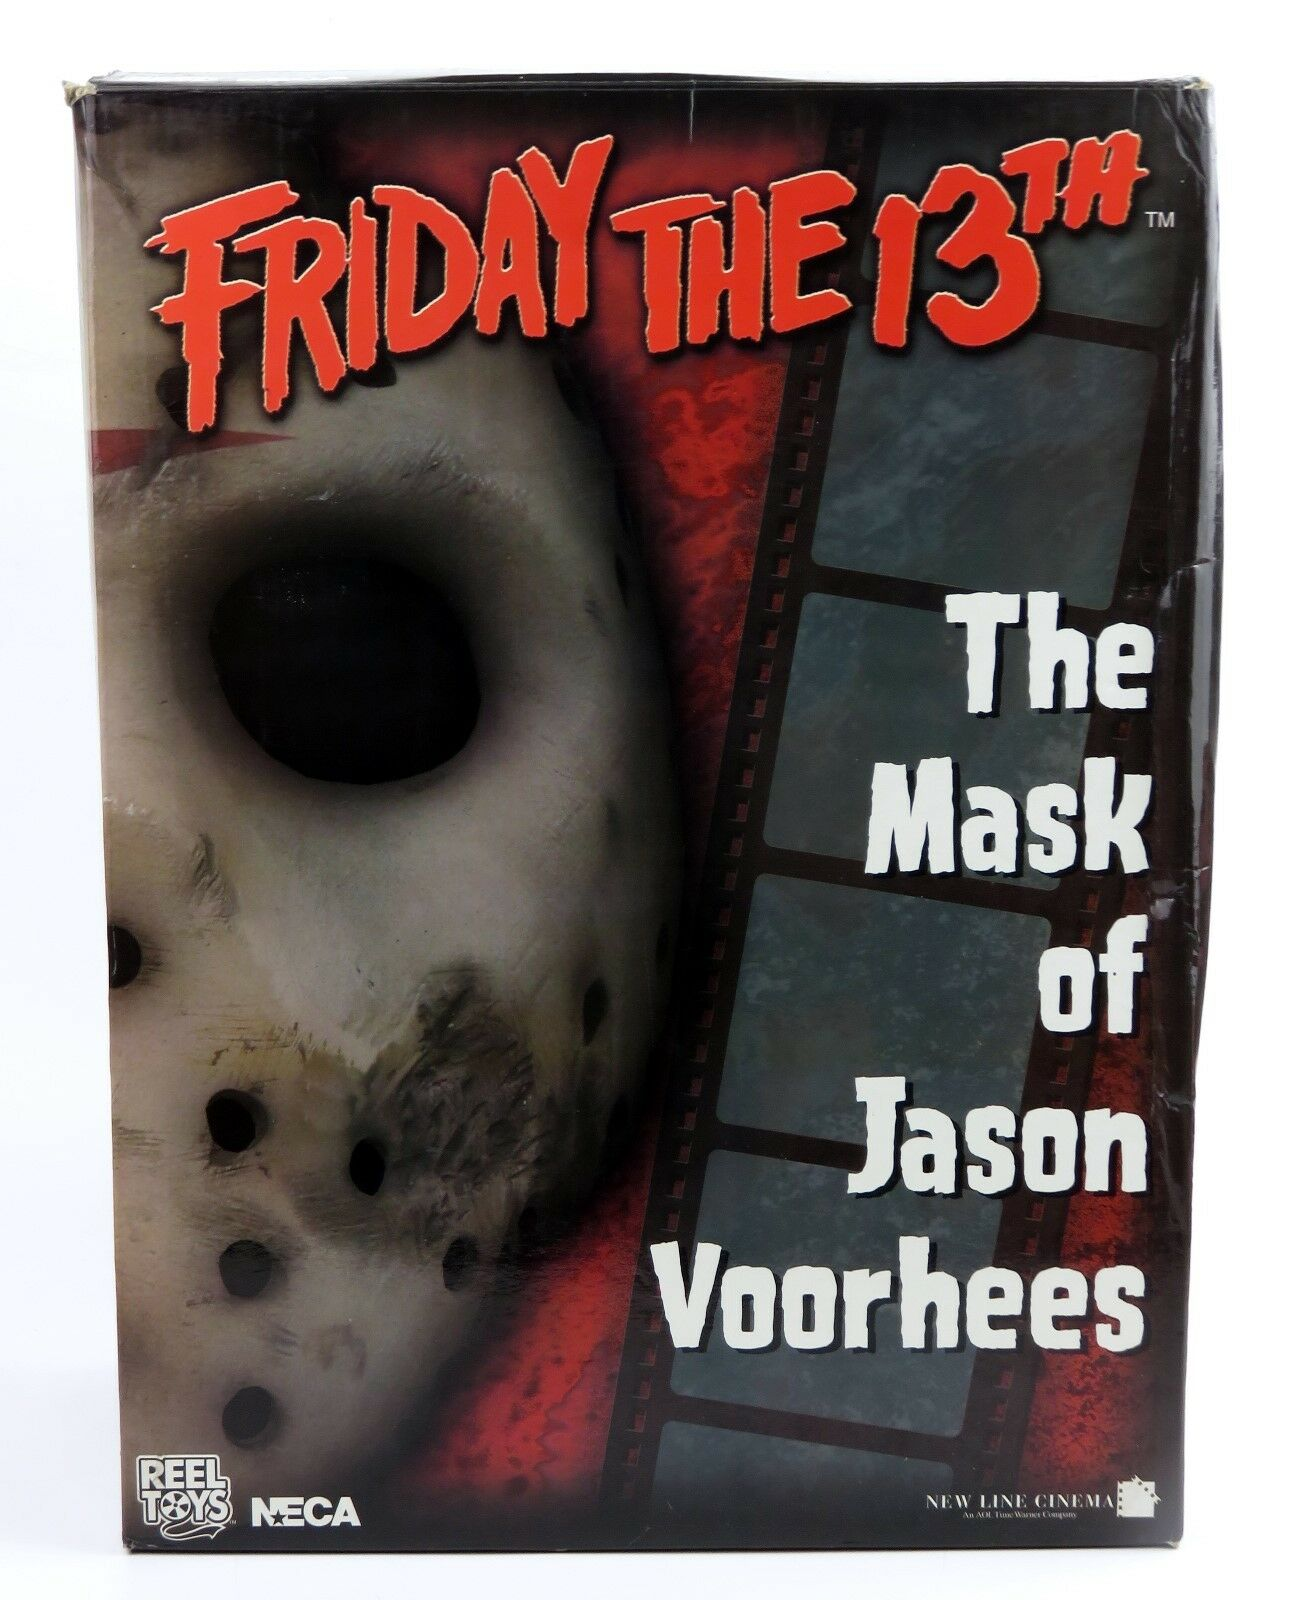 NECA - Friday The 13th - The Mask of Jason Voorhees - Limited 1000 pcs